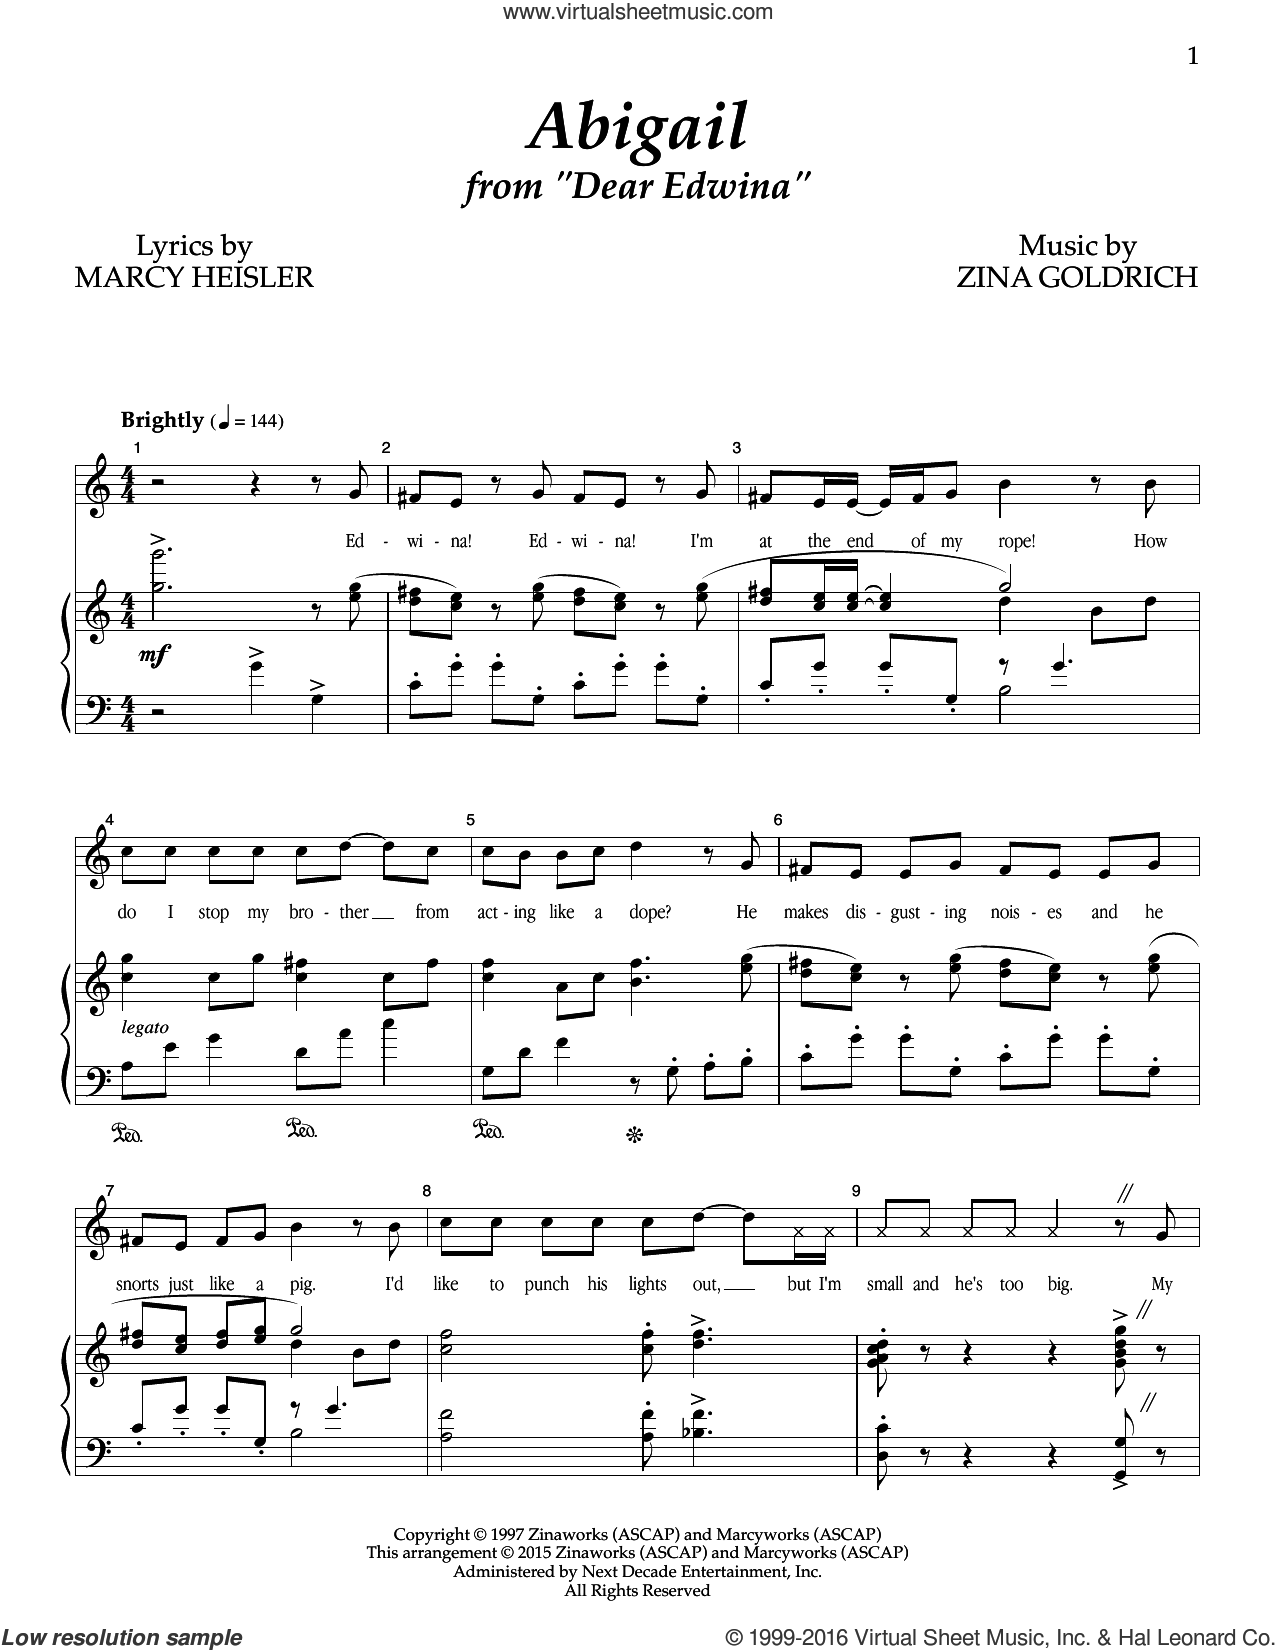 Abigail sheet music for voice and piano by Zina Goldrich, Goldrich & Heisler and Marcy Heisler. Score Image Preview.